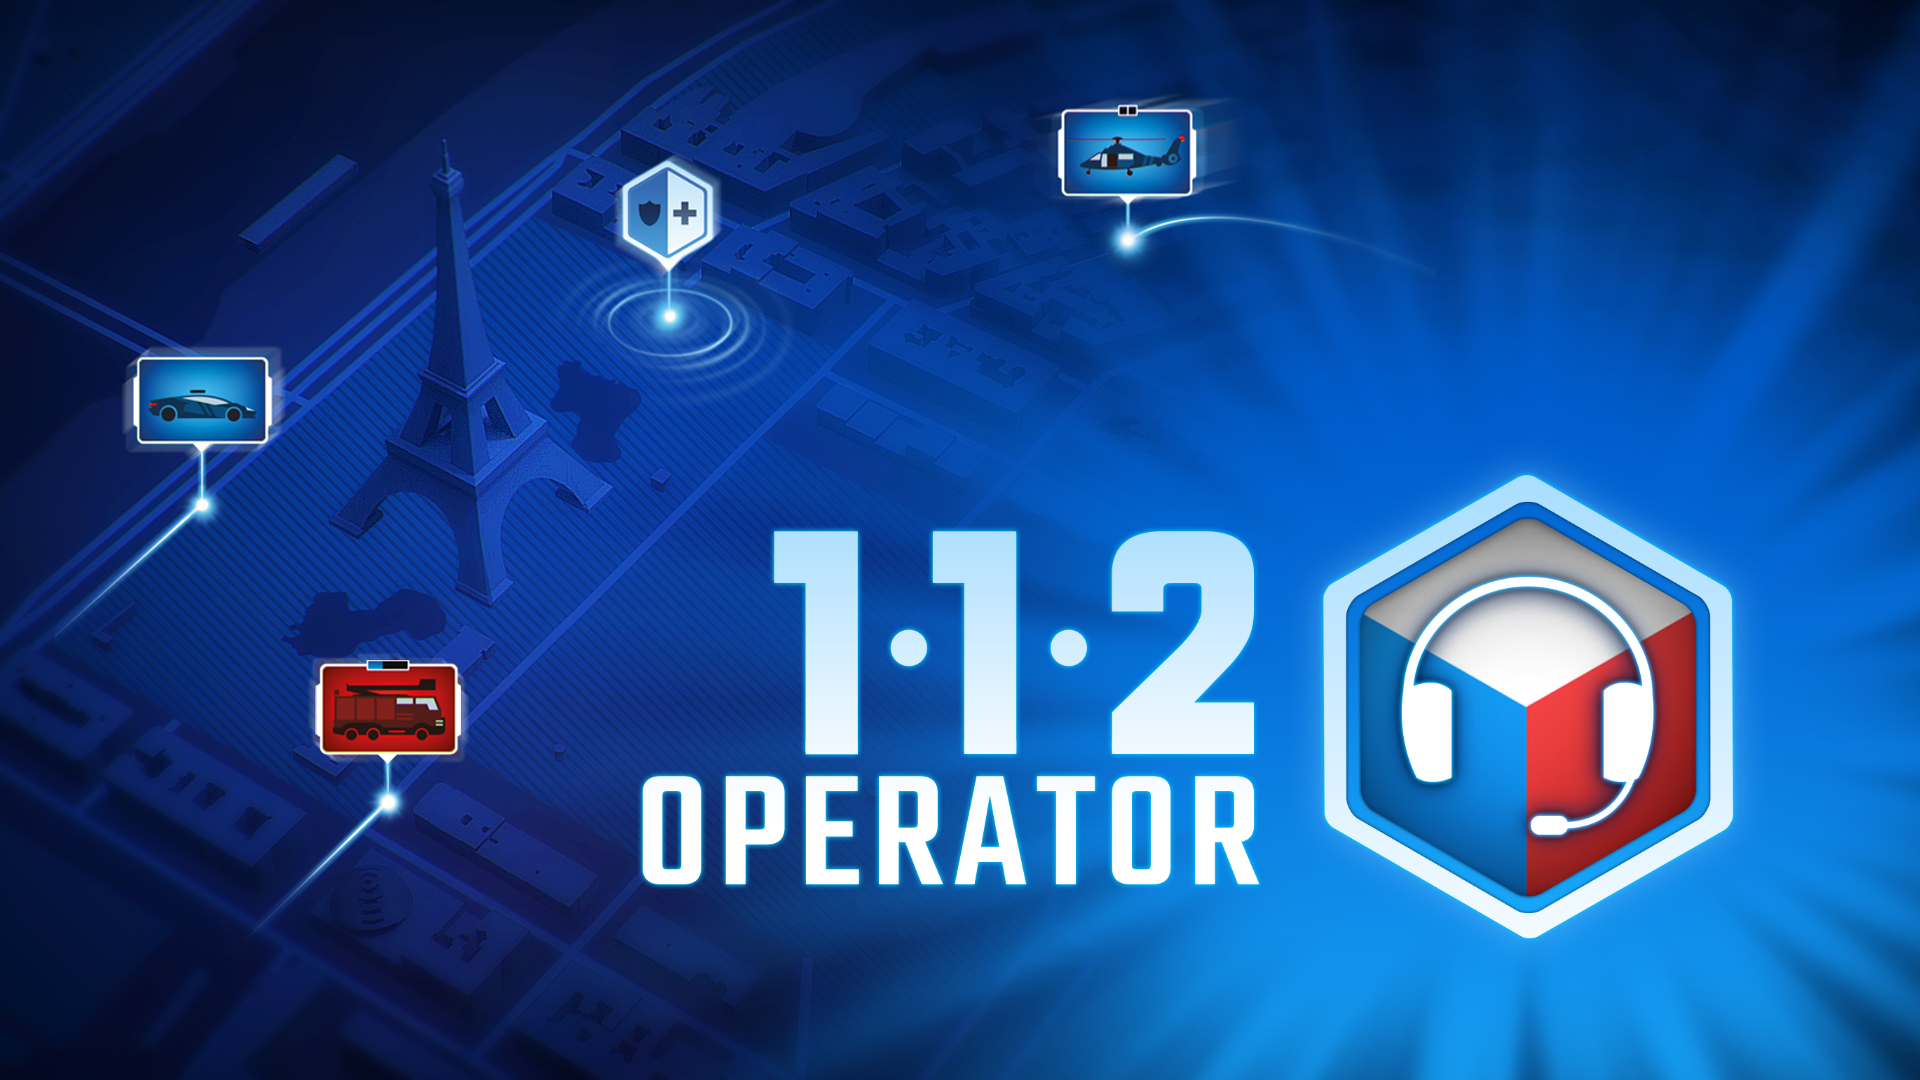 112 Operator - The Last Duty Free Download